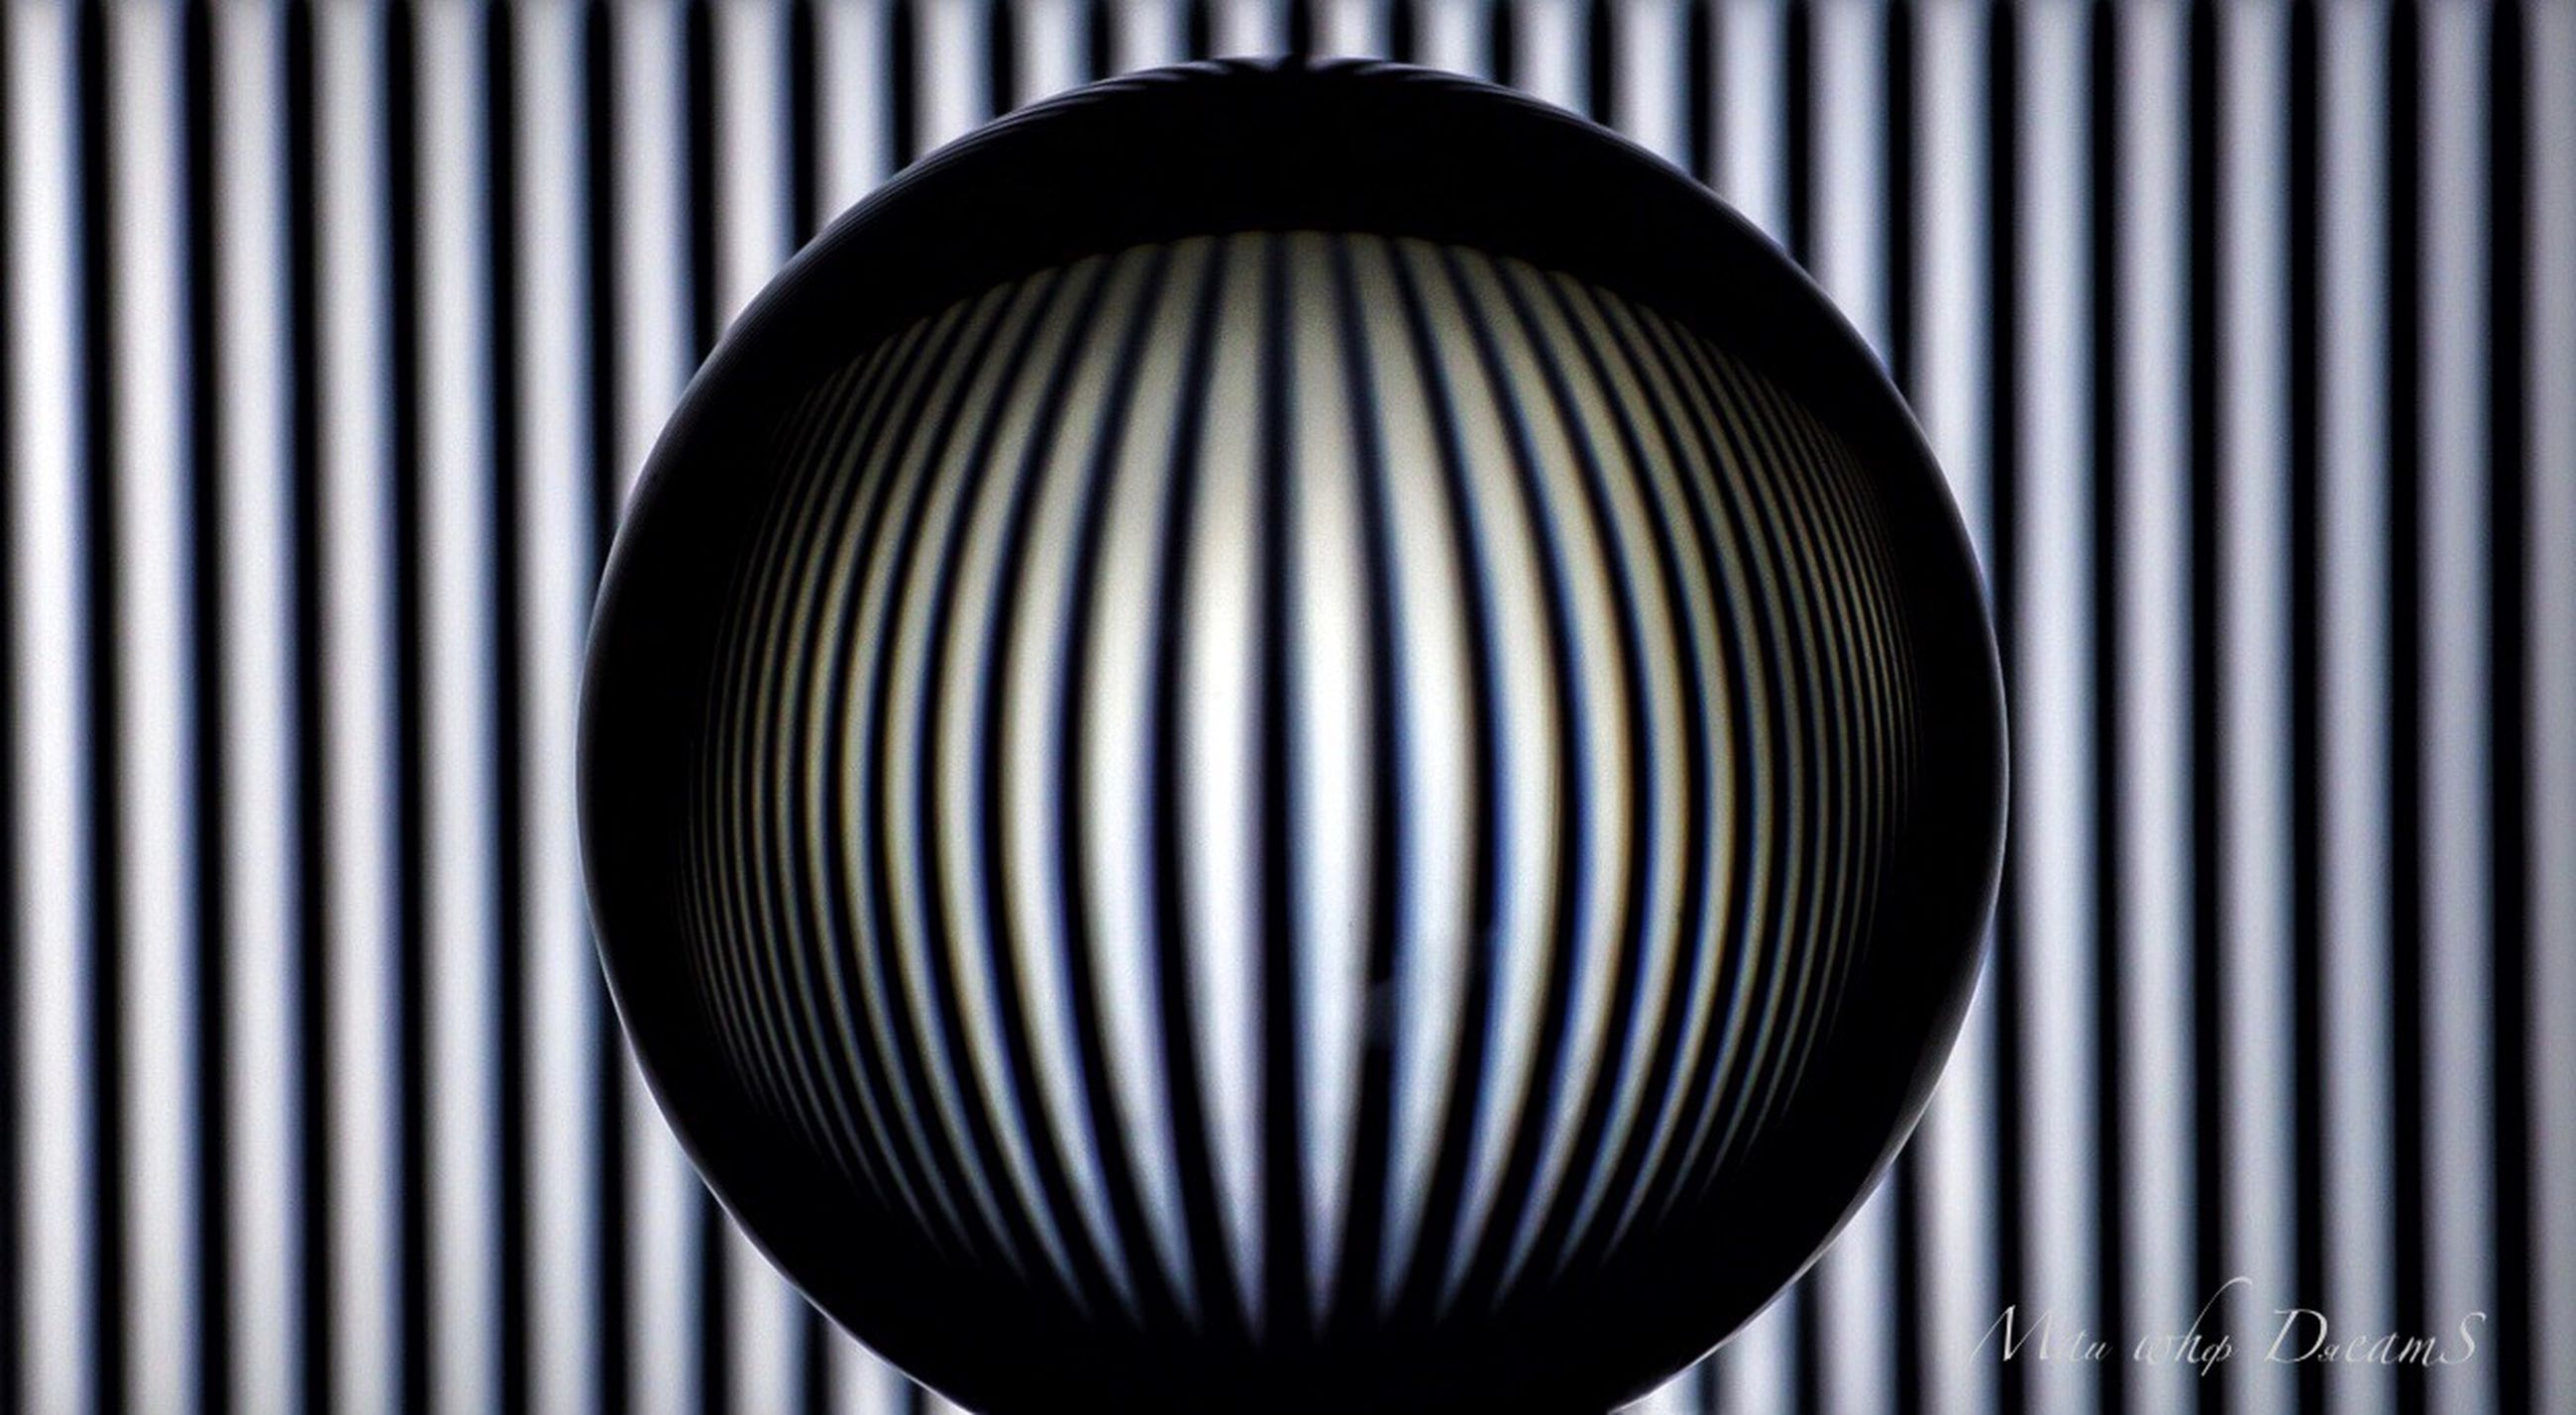 pattern, indoors, close-up, no people, geometric shape, shape, sphere, striped, lighting equipment, still life, design, circle, metal, single object, focus on foreground, abstract, illuminated, ball, electric light, shiny, light, electric lamp